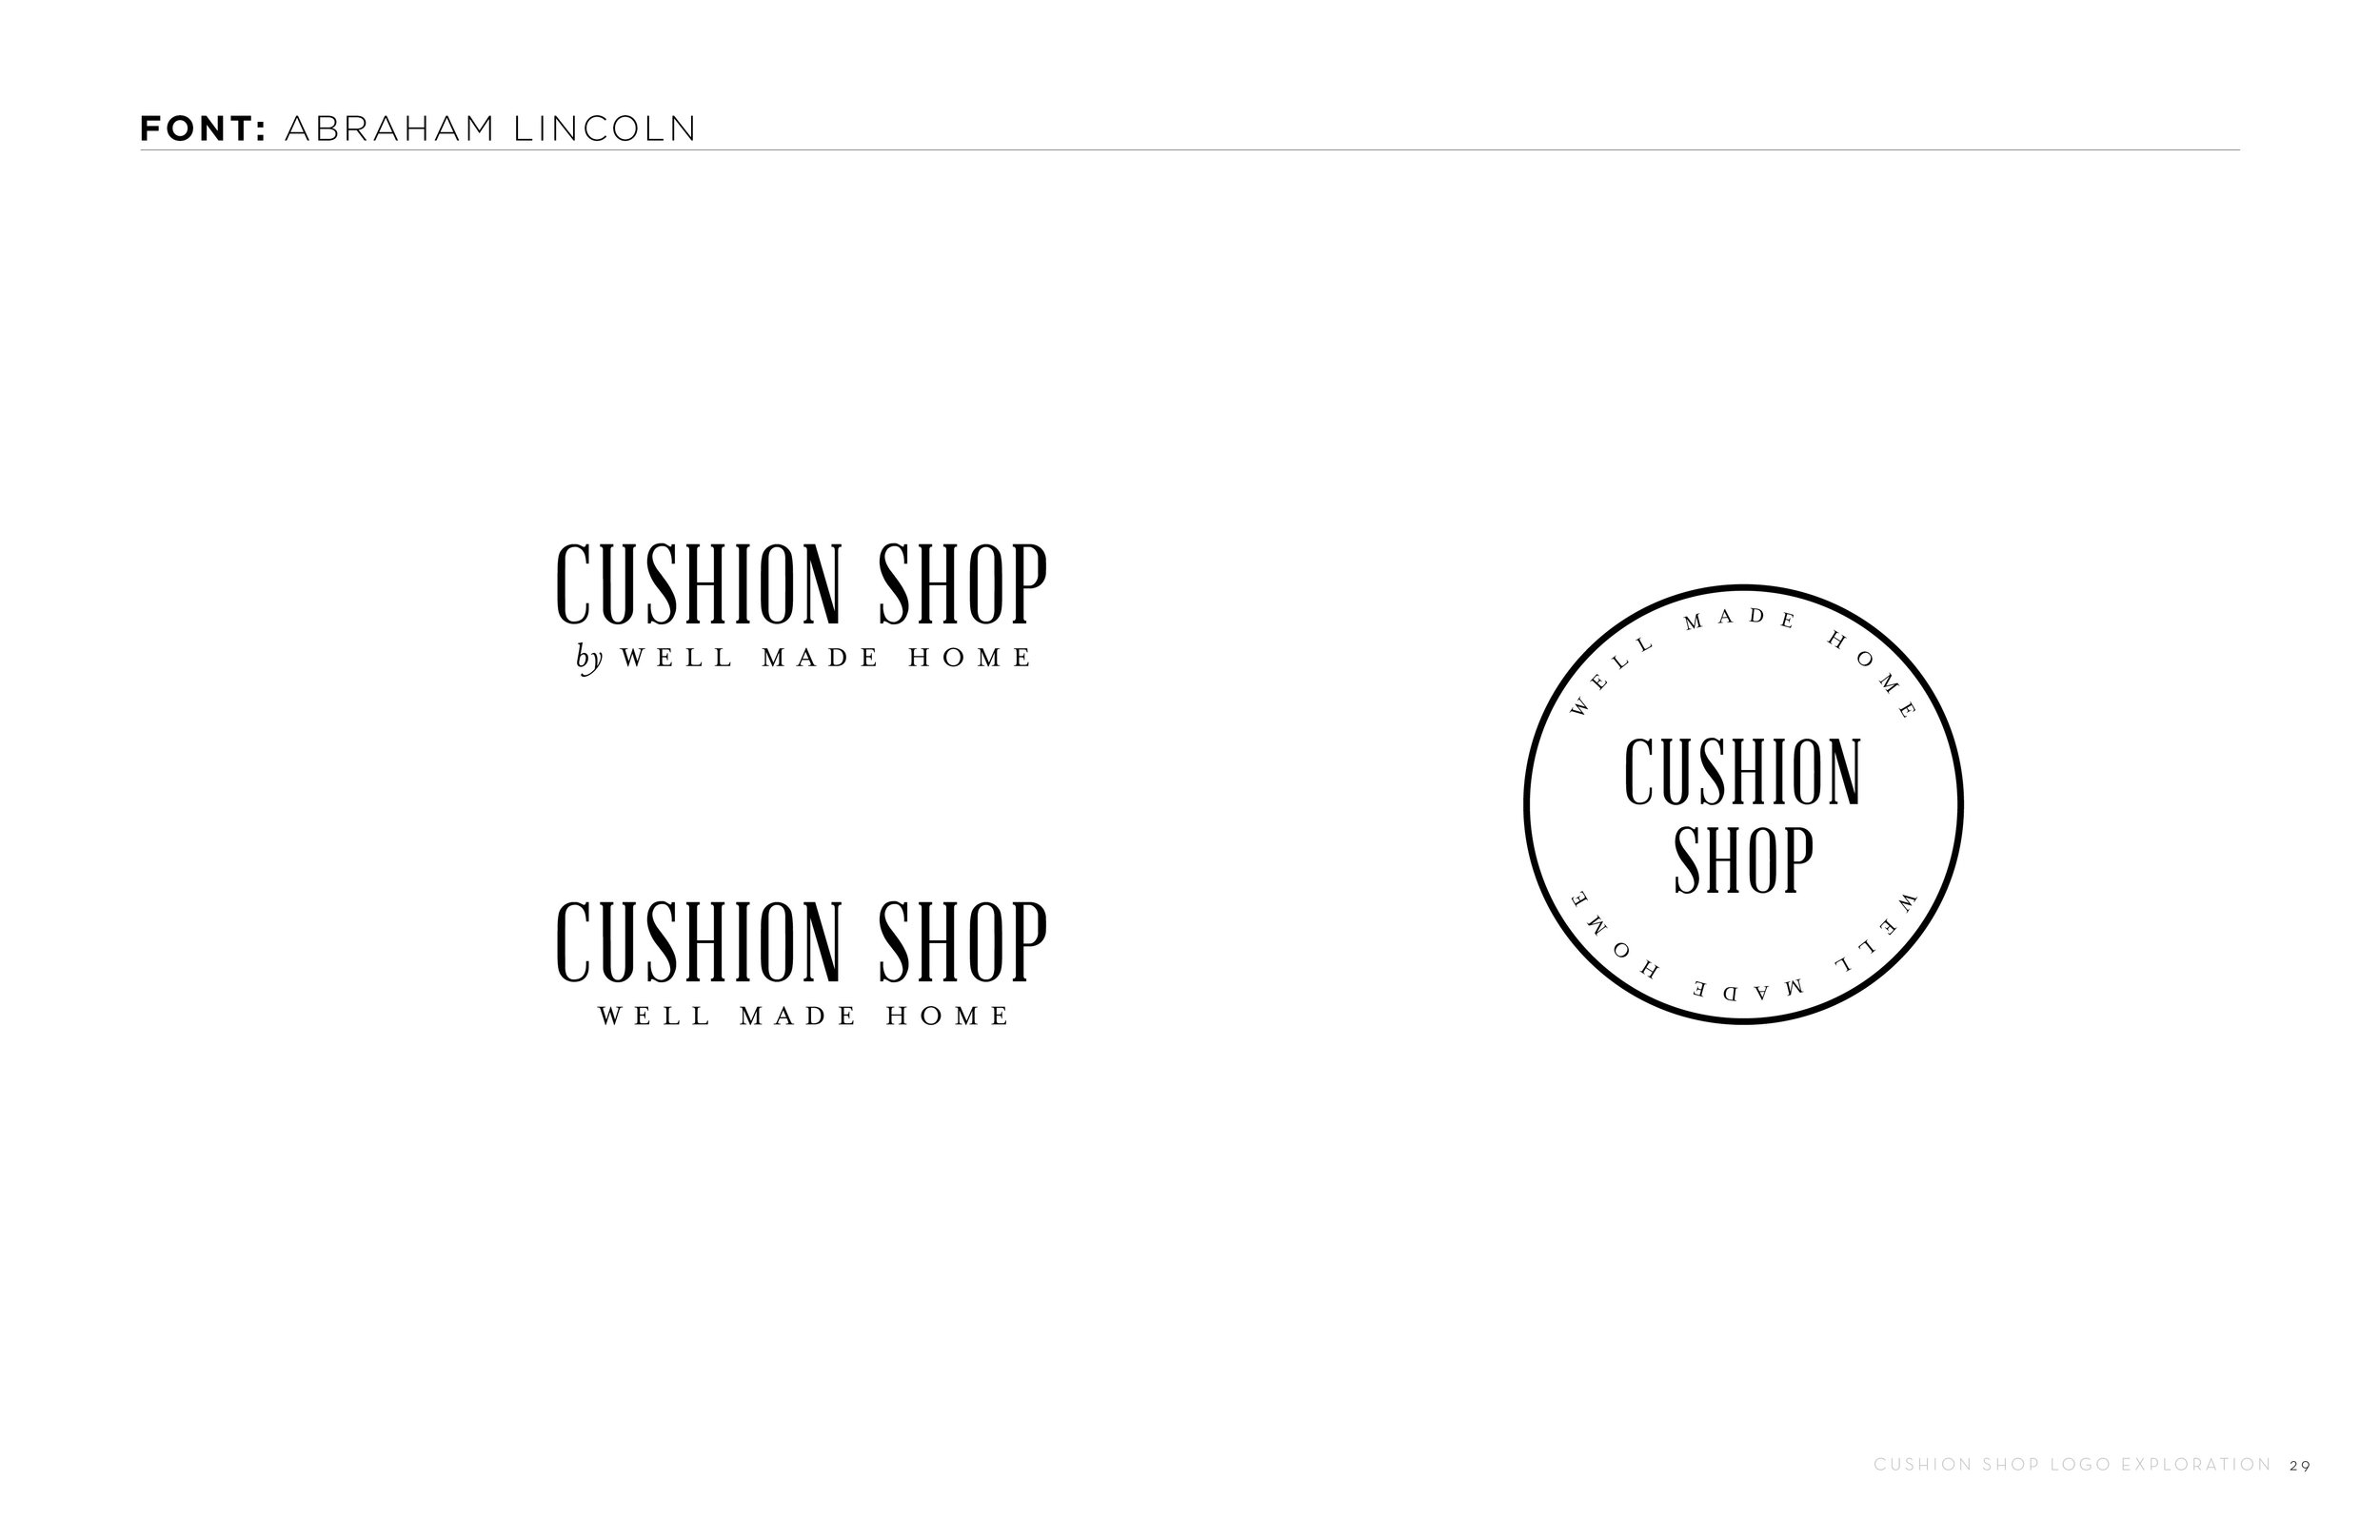 Cushion Shop_Logo Concepts_R10_29.jpg